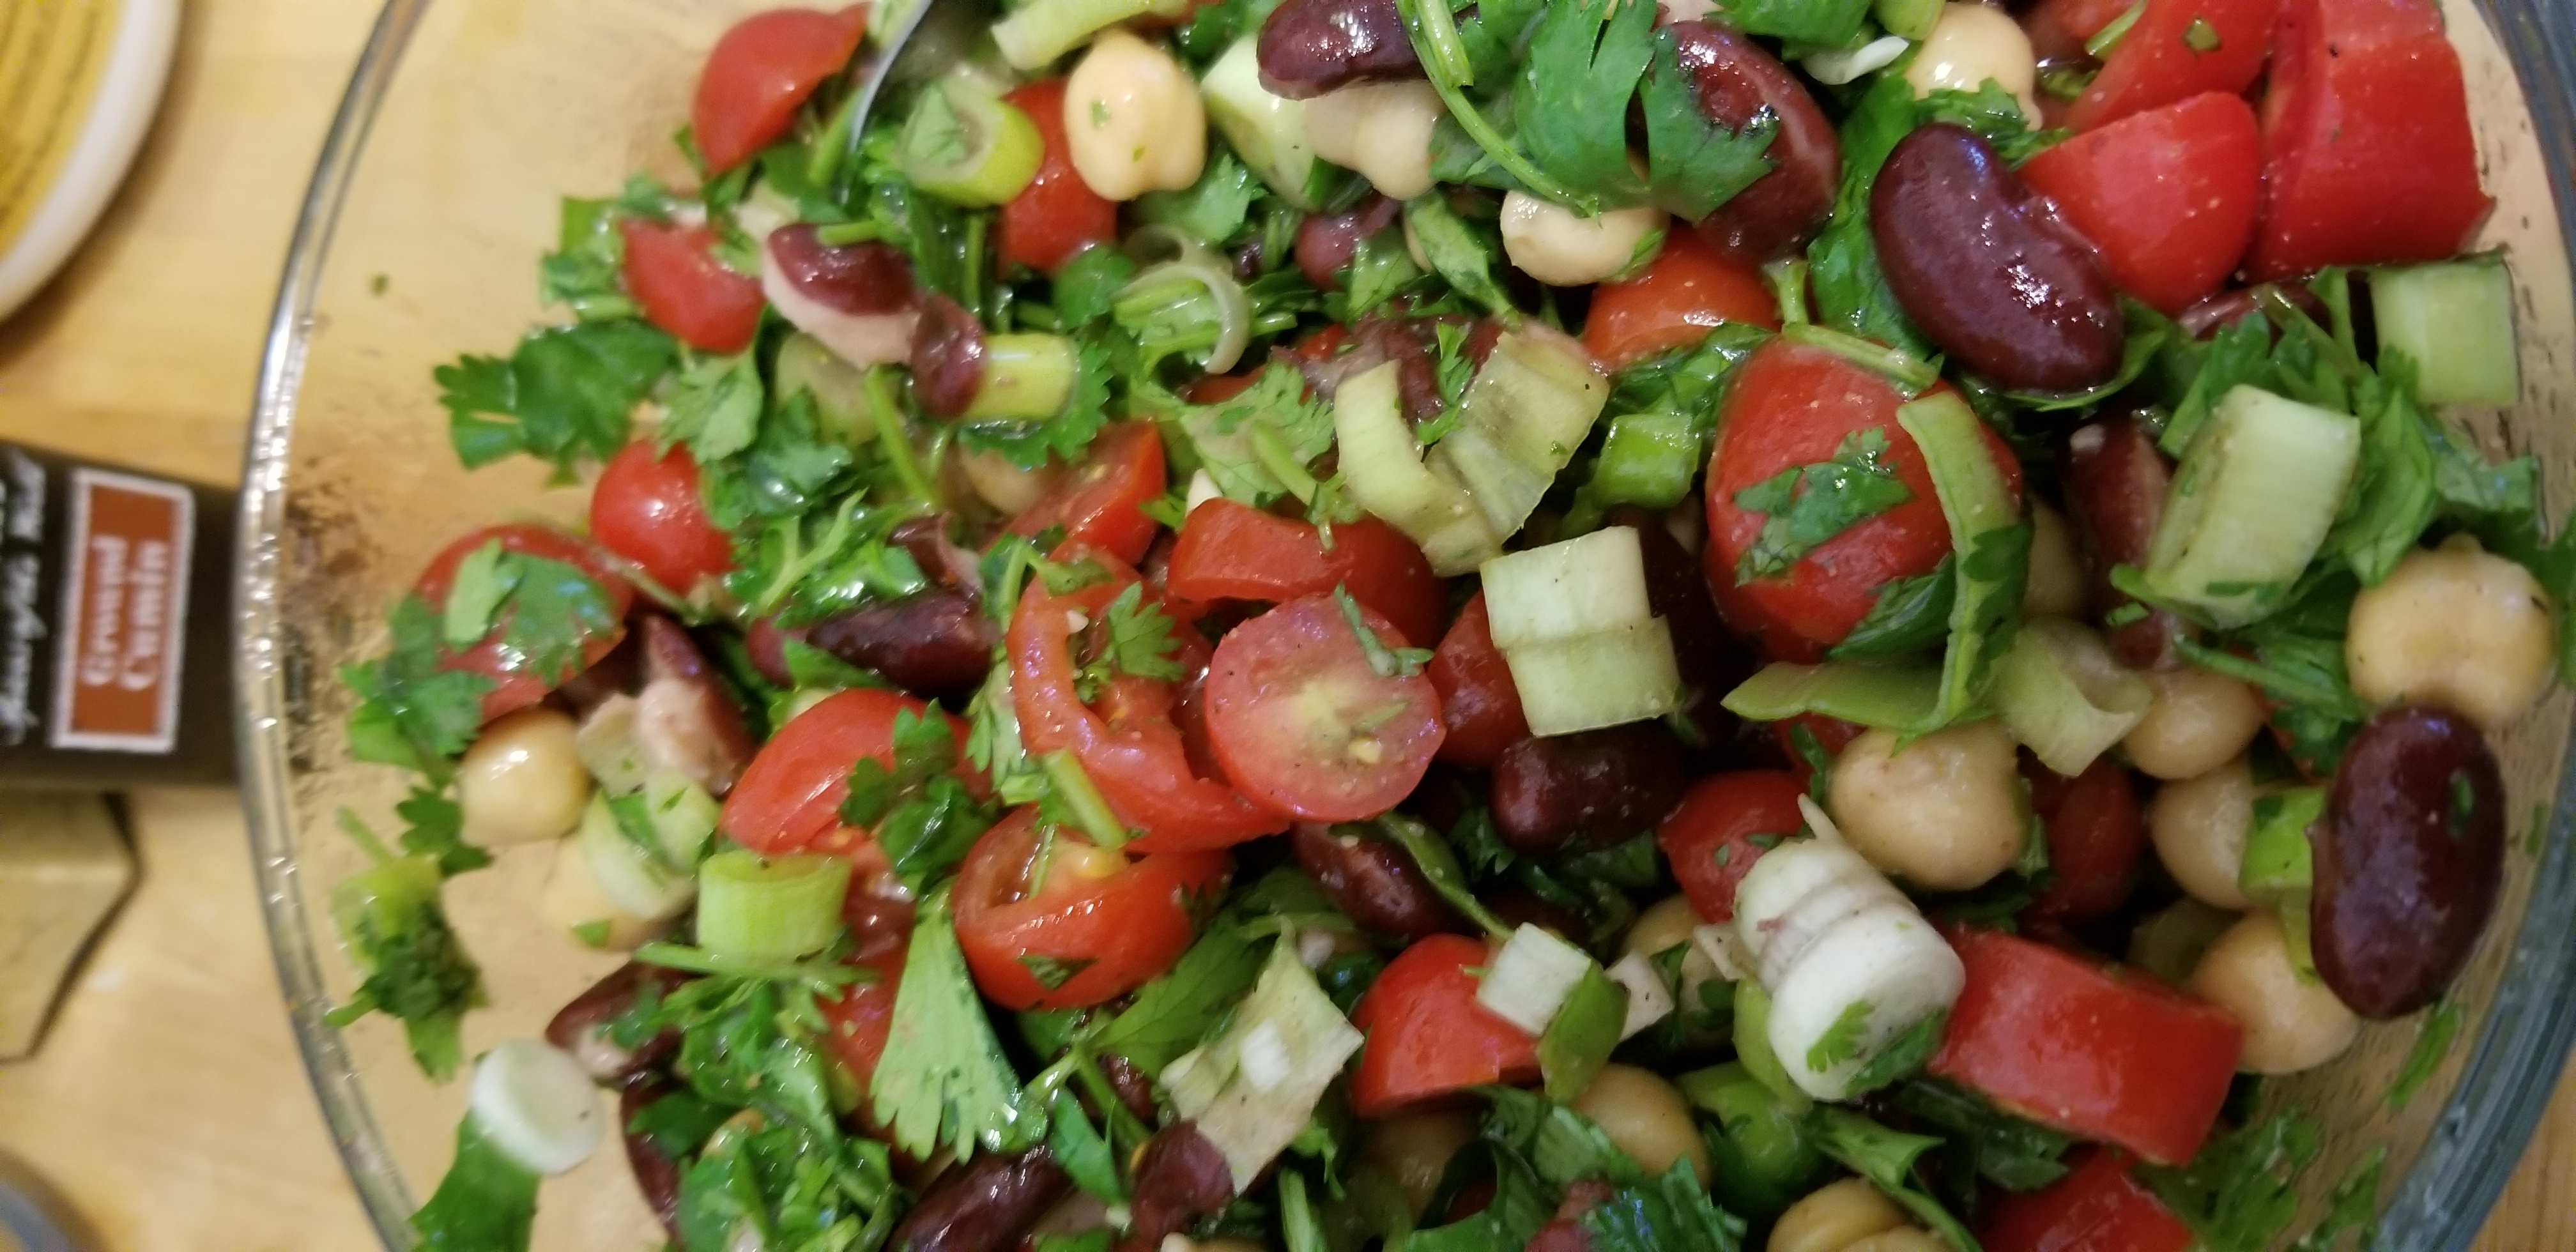 Cold bean salad